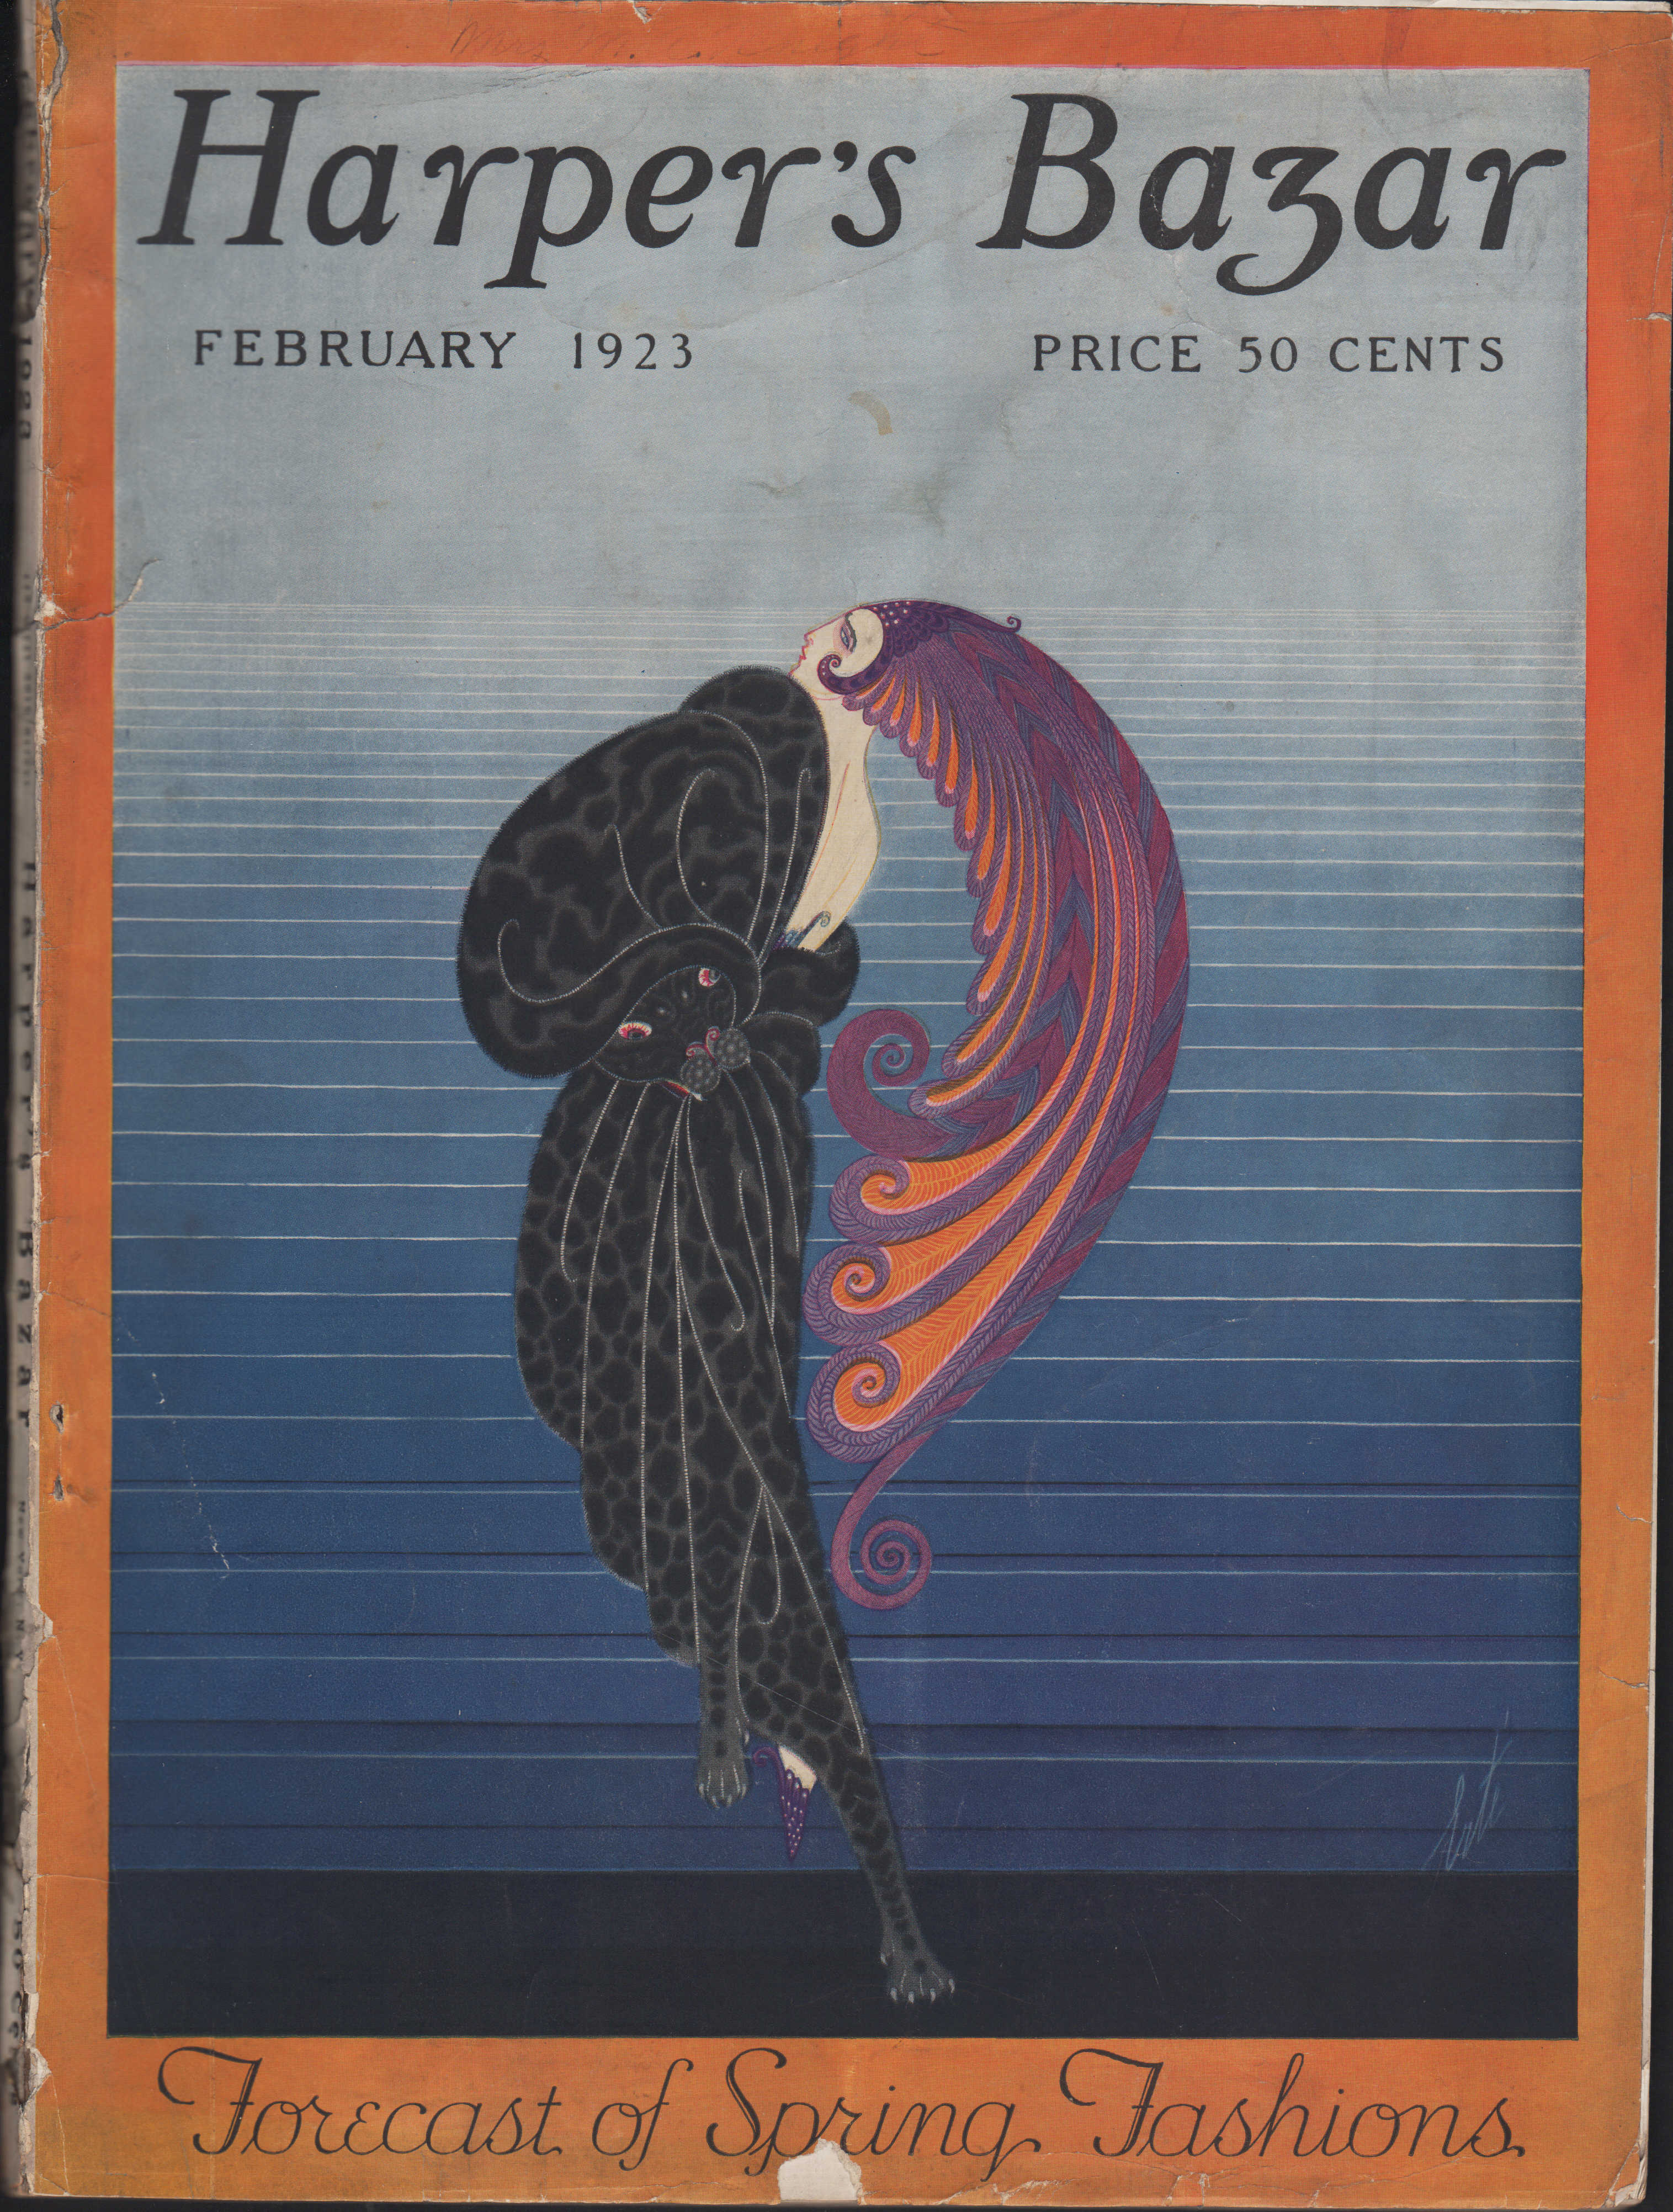 Image for Harper's Bazar (Harper's Bazaar), February, 1923 Forecast of Spring Fashions